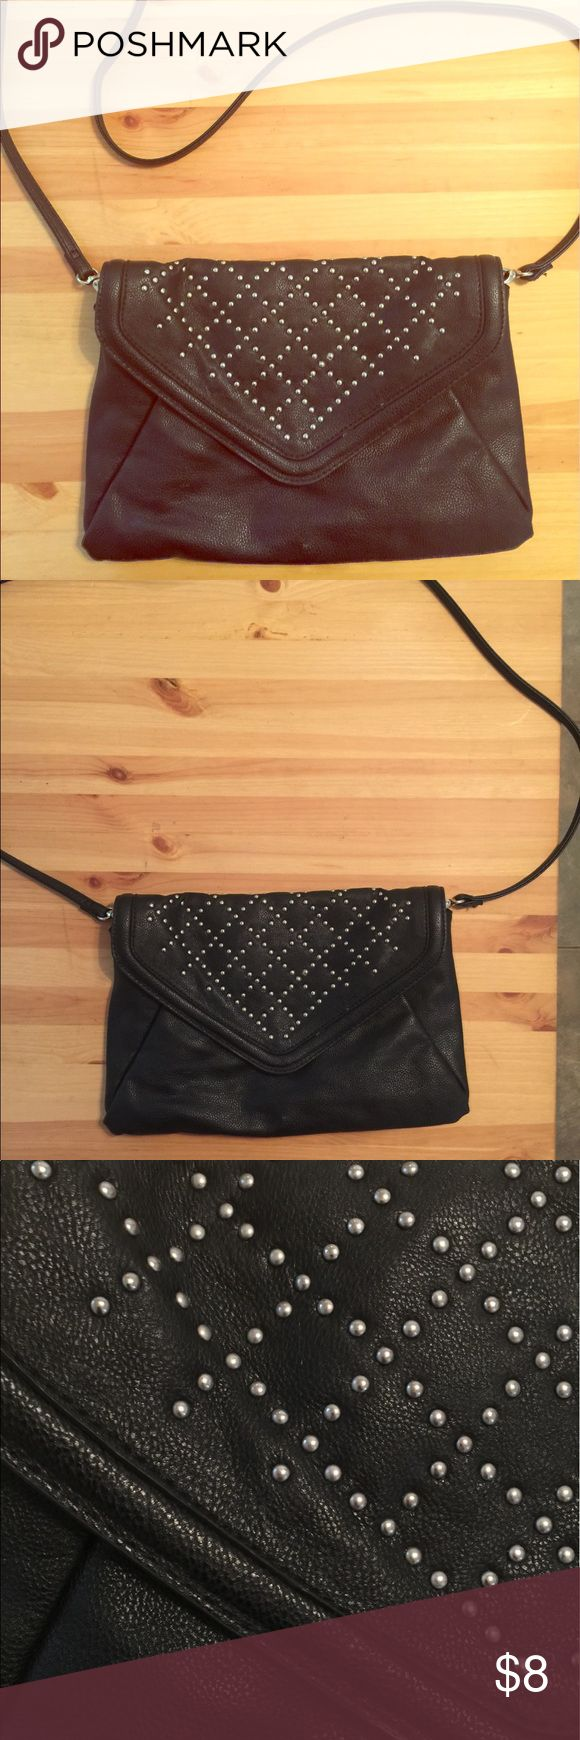 Steve madden purse Steve madden /edgy/ black / it has signs of wear mostly in the inside of the purse. Bags Crossbody Bags